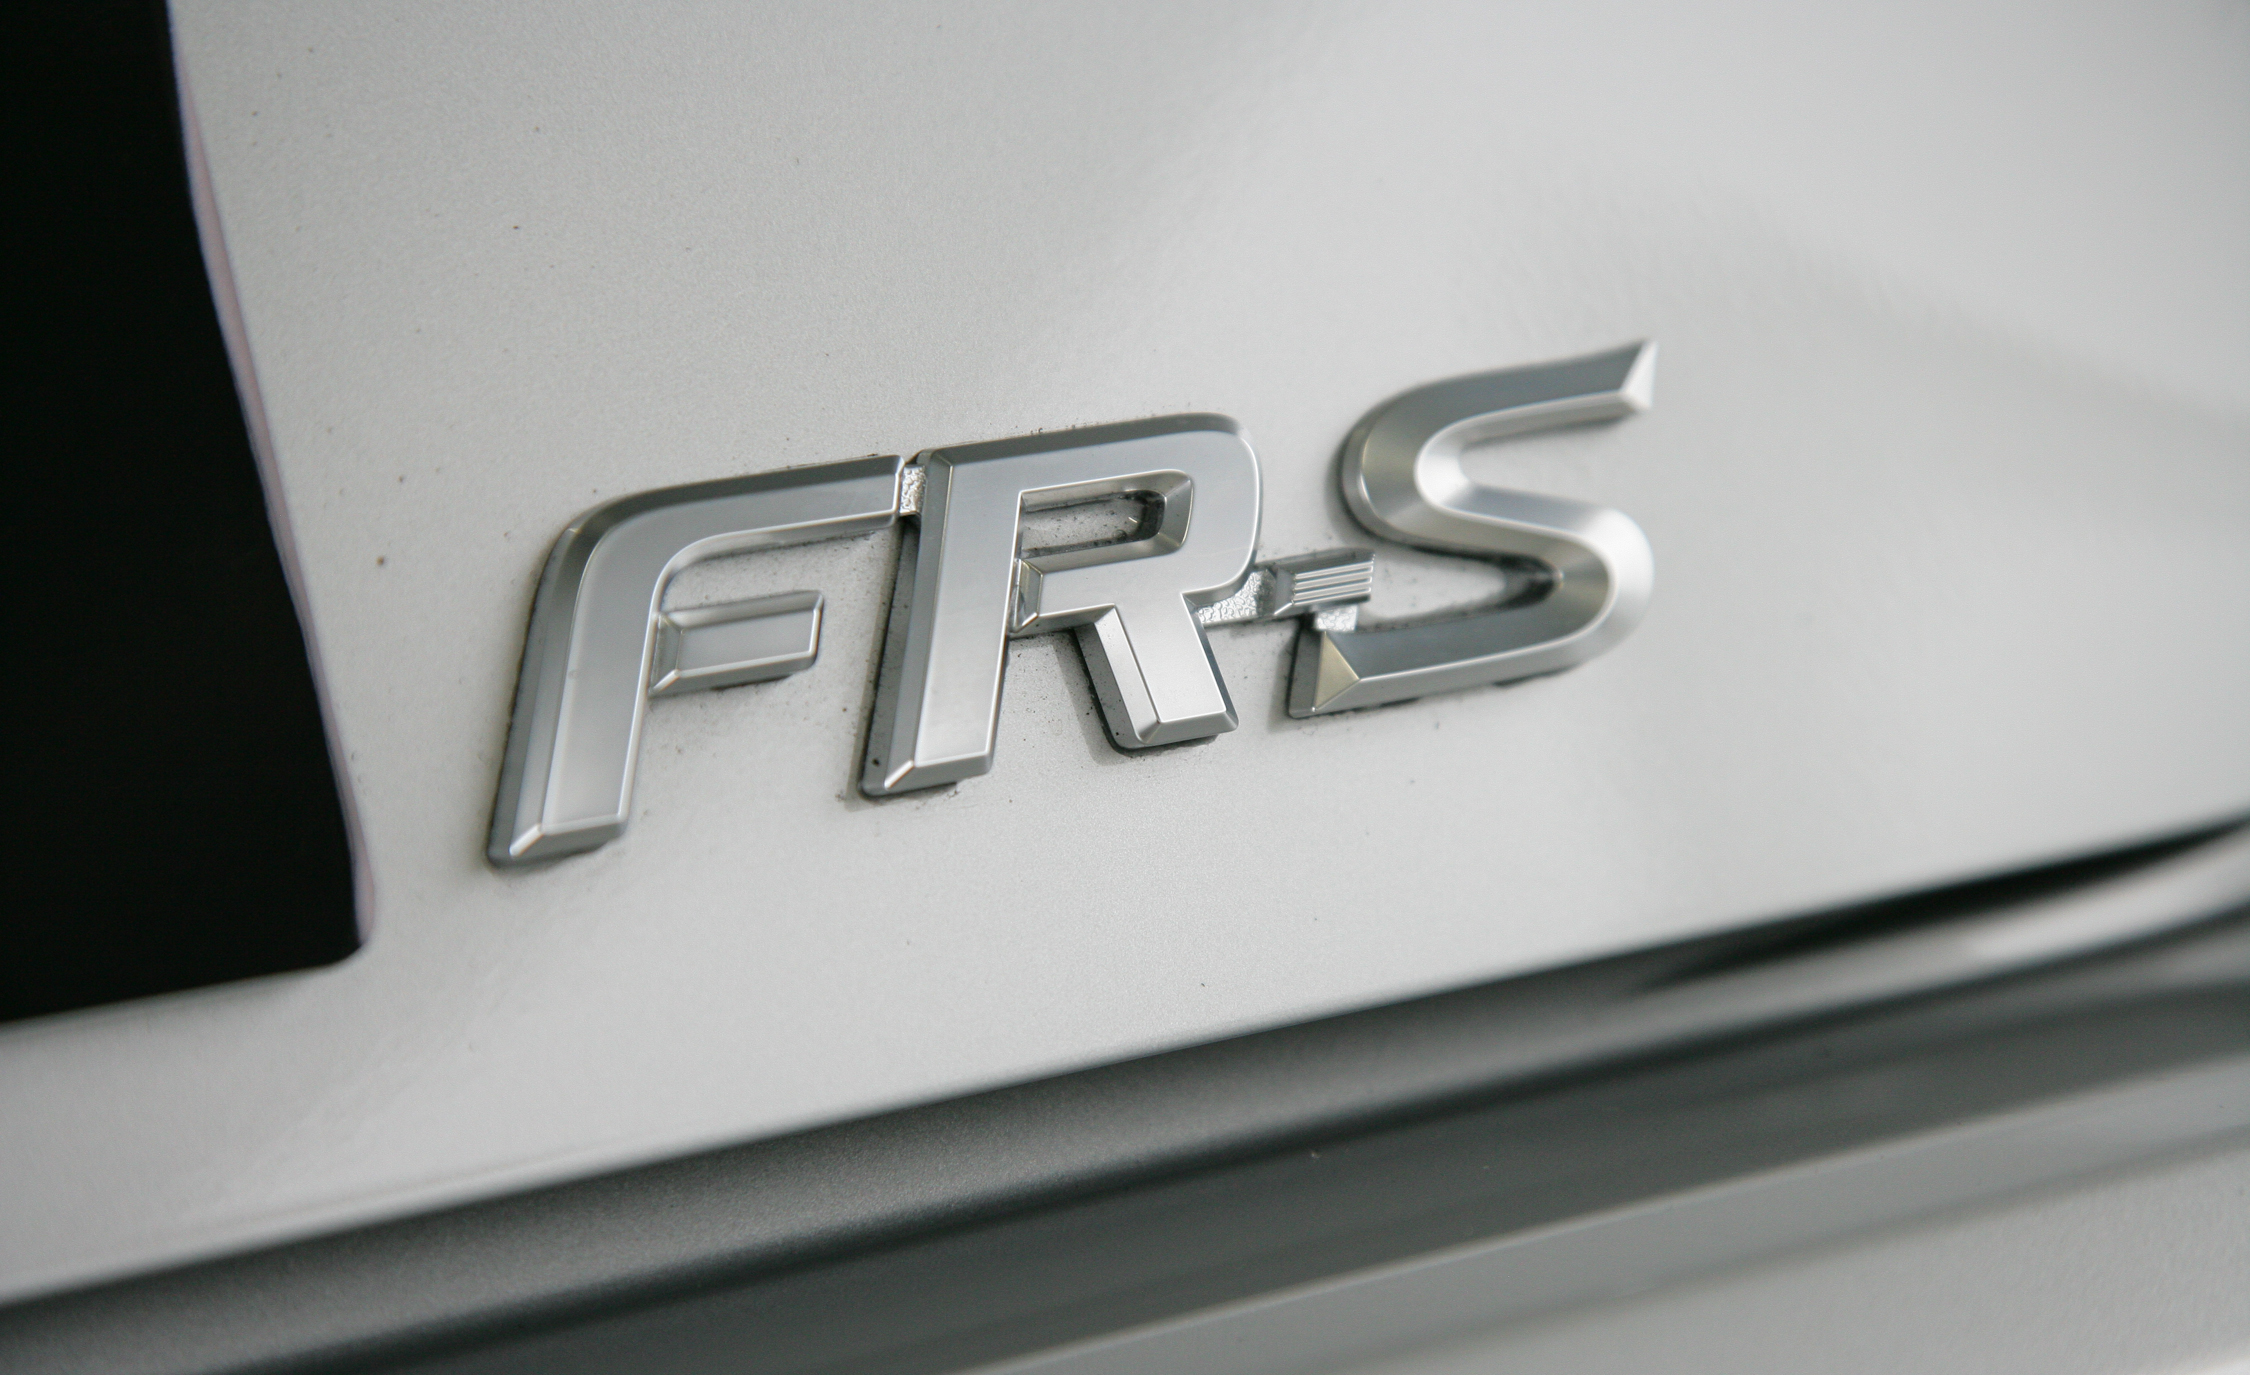 2013 Scion FR S Exterior View Rear Emblem (Photo 14 of 47)